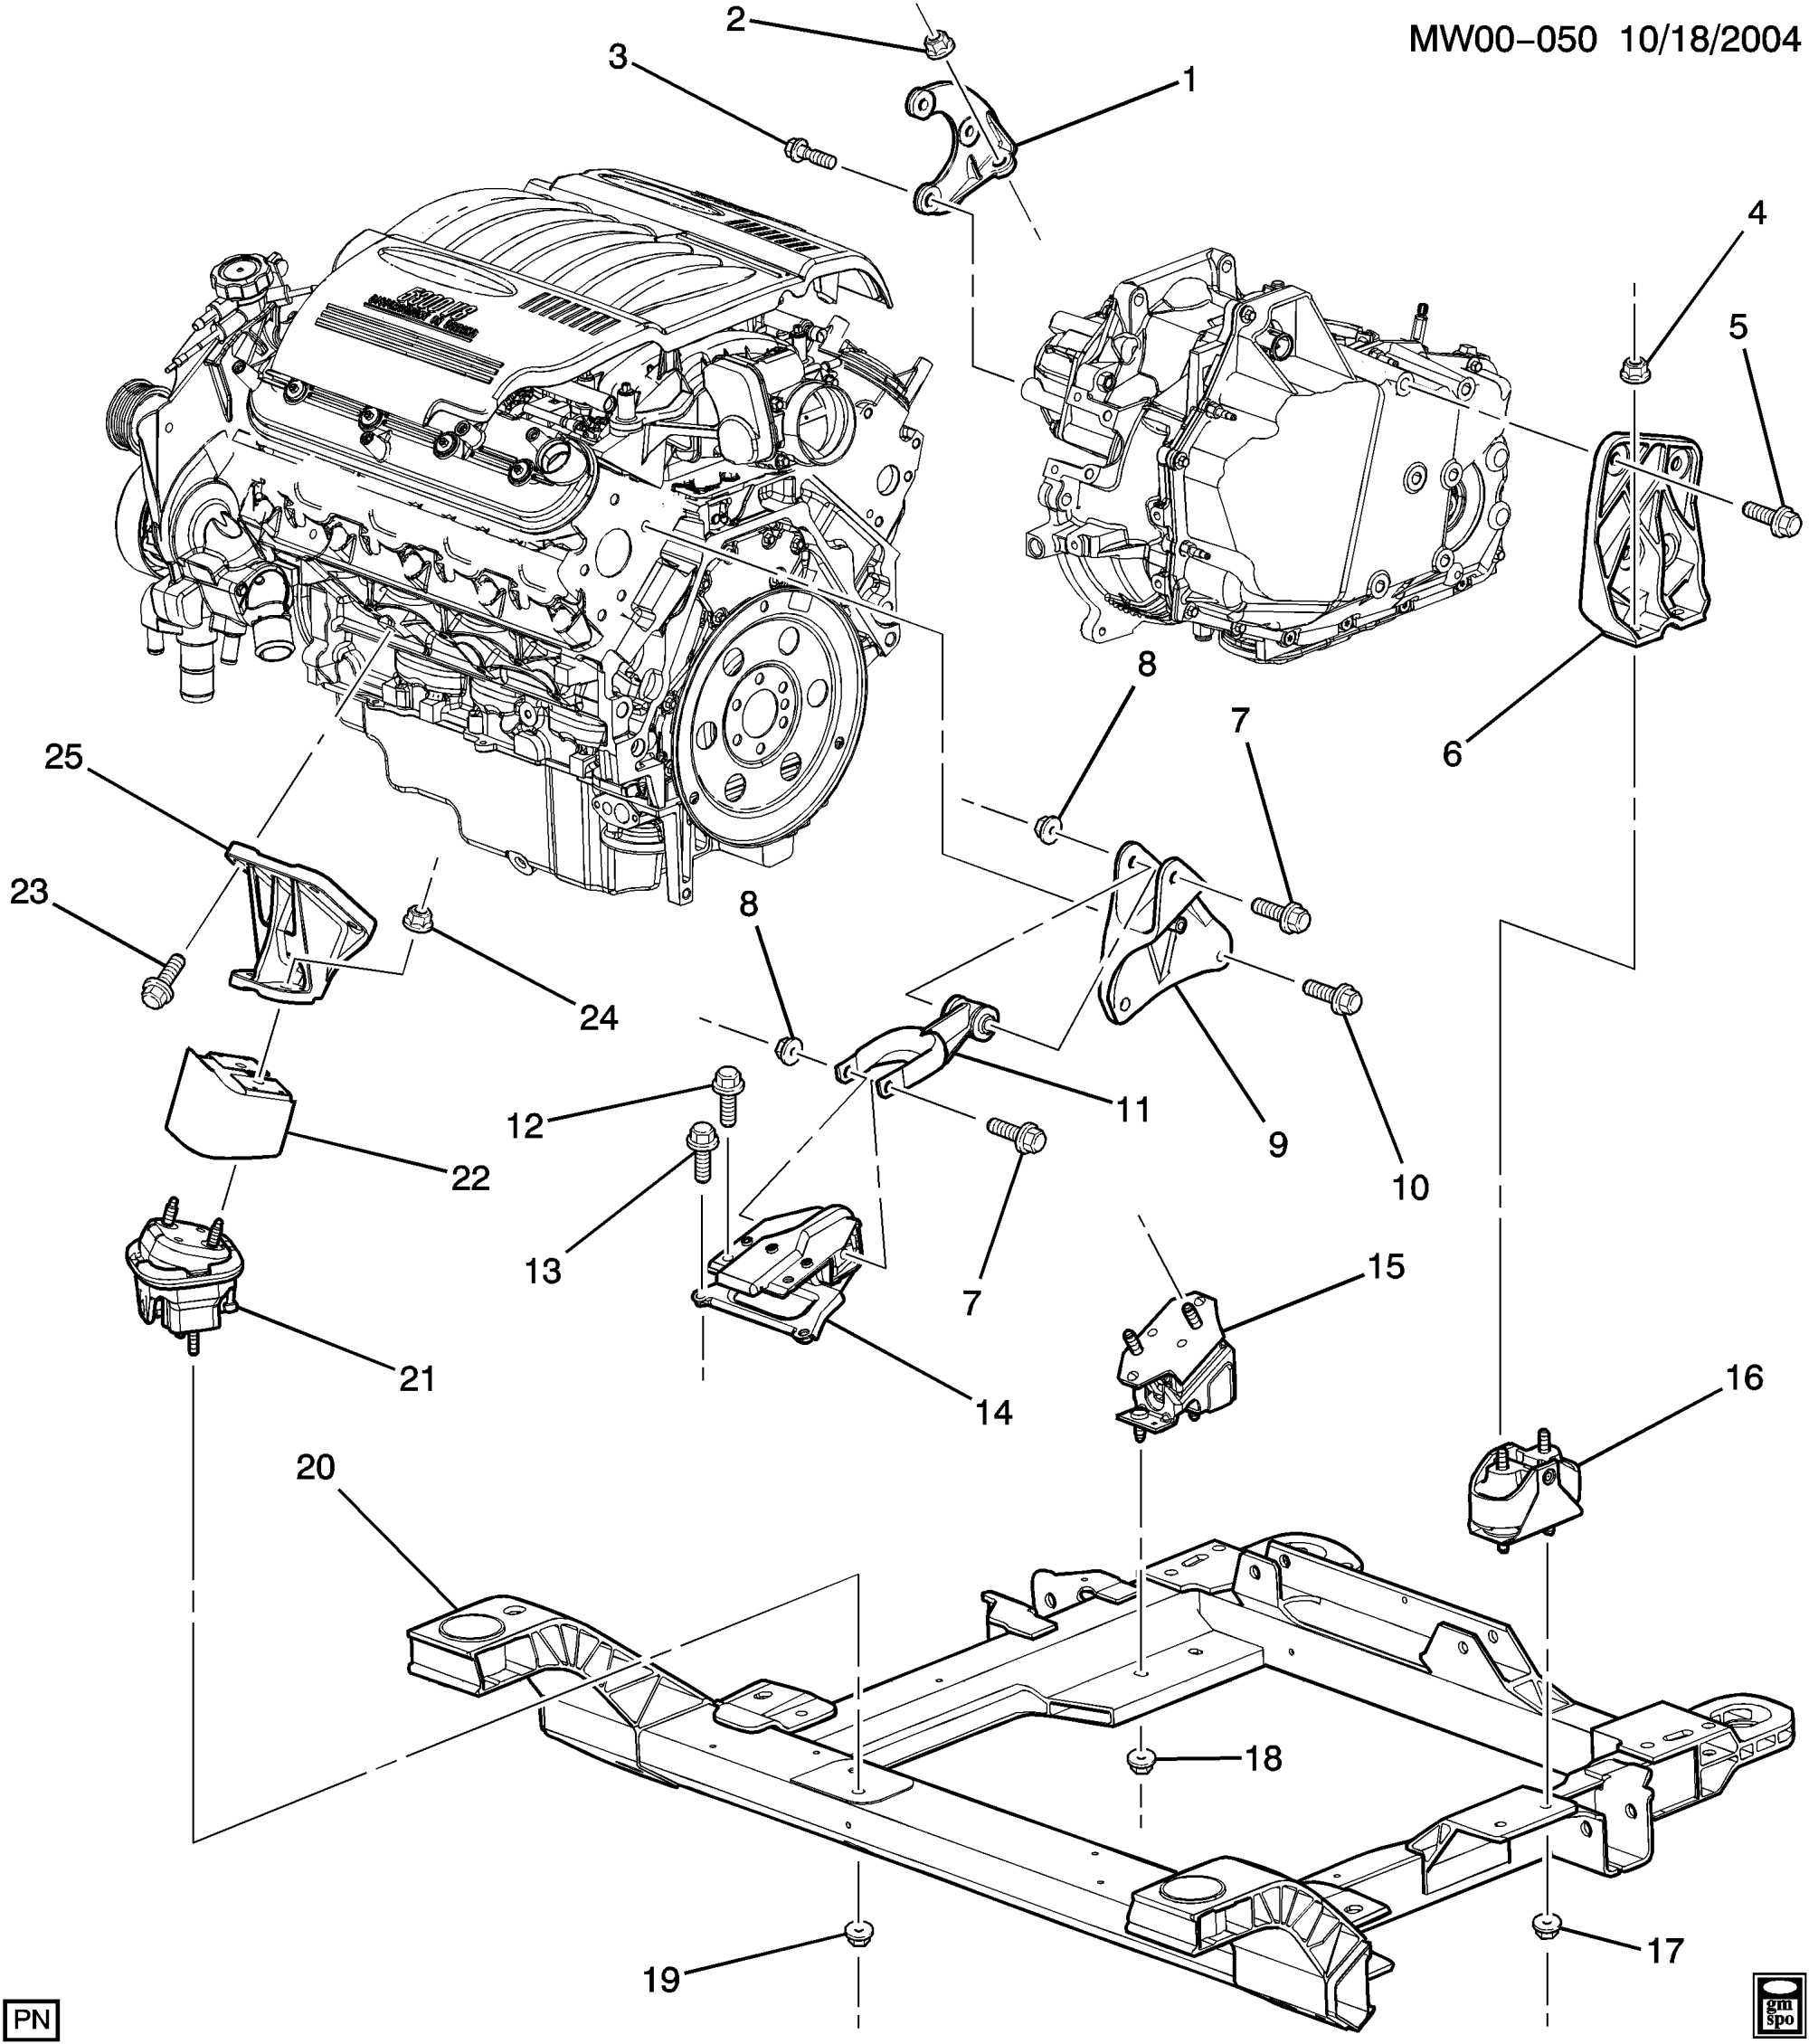 hight resolution of buick lacrosse allure wn19 engine transmission mounting ls4 5 3 ls4 electrical diagram ls4 engine diagram